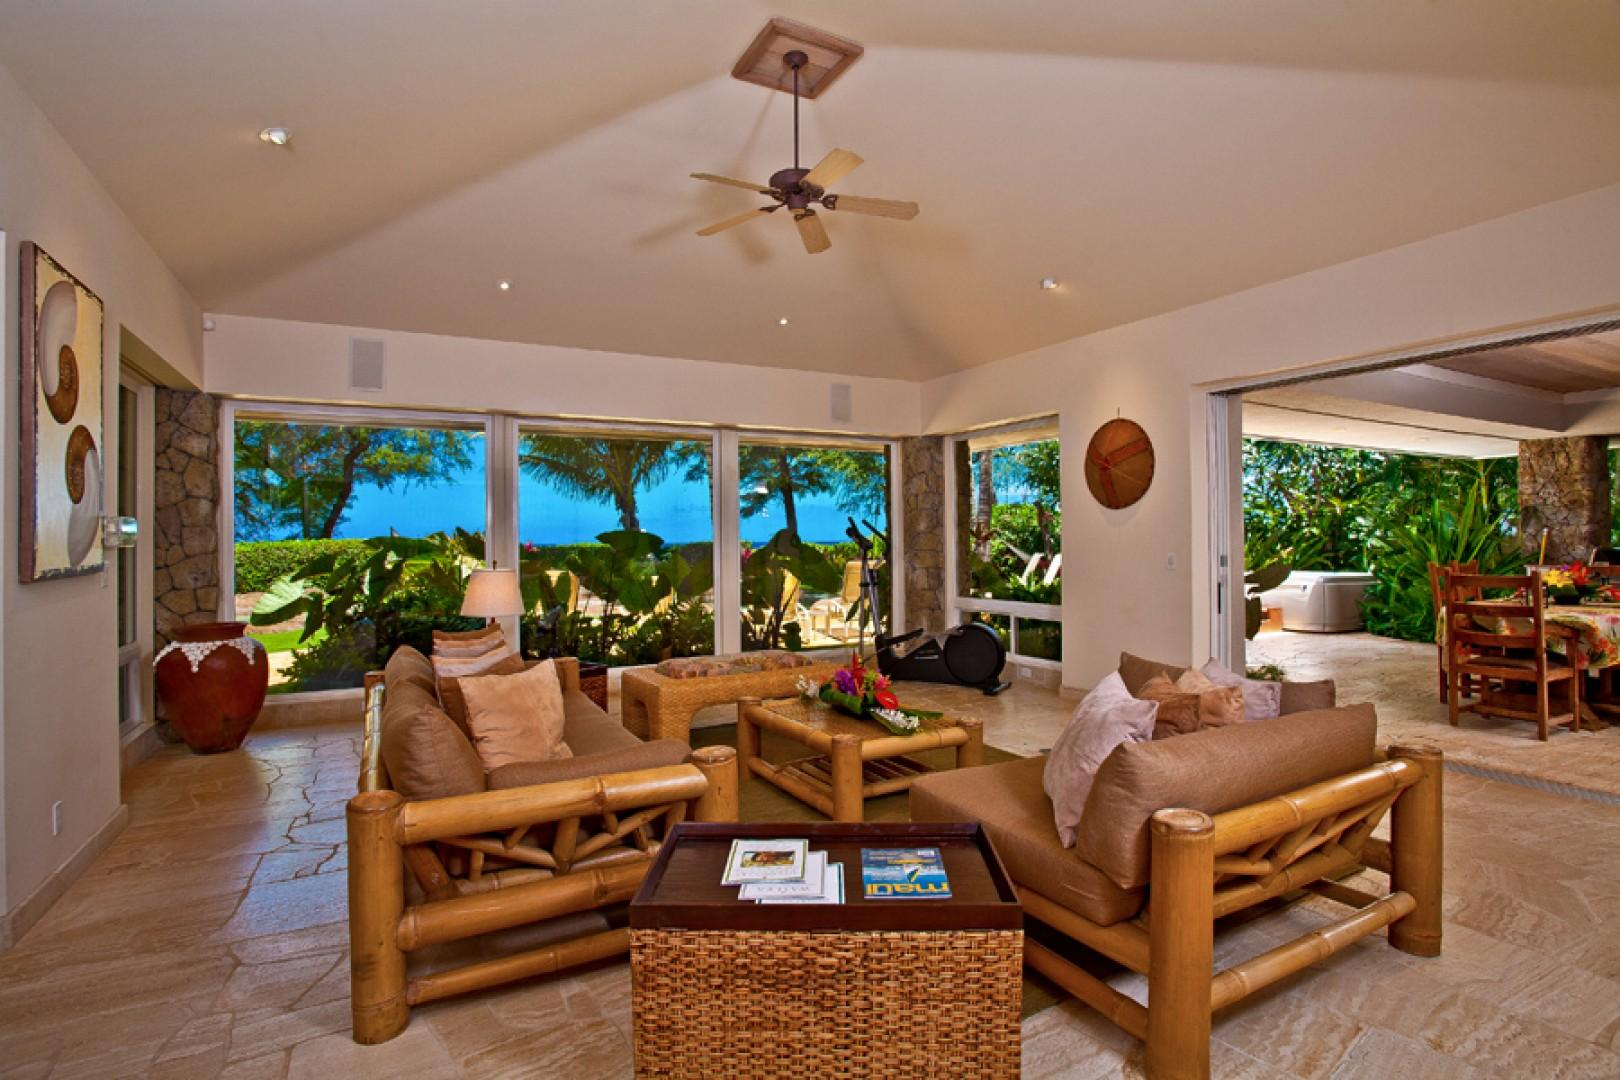 Sea Shells Beach House - Pool View Indoor Lounging Area